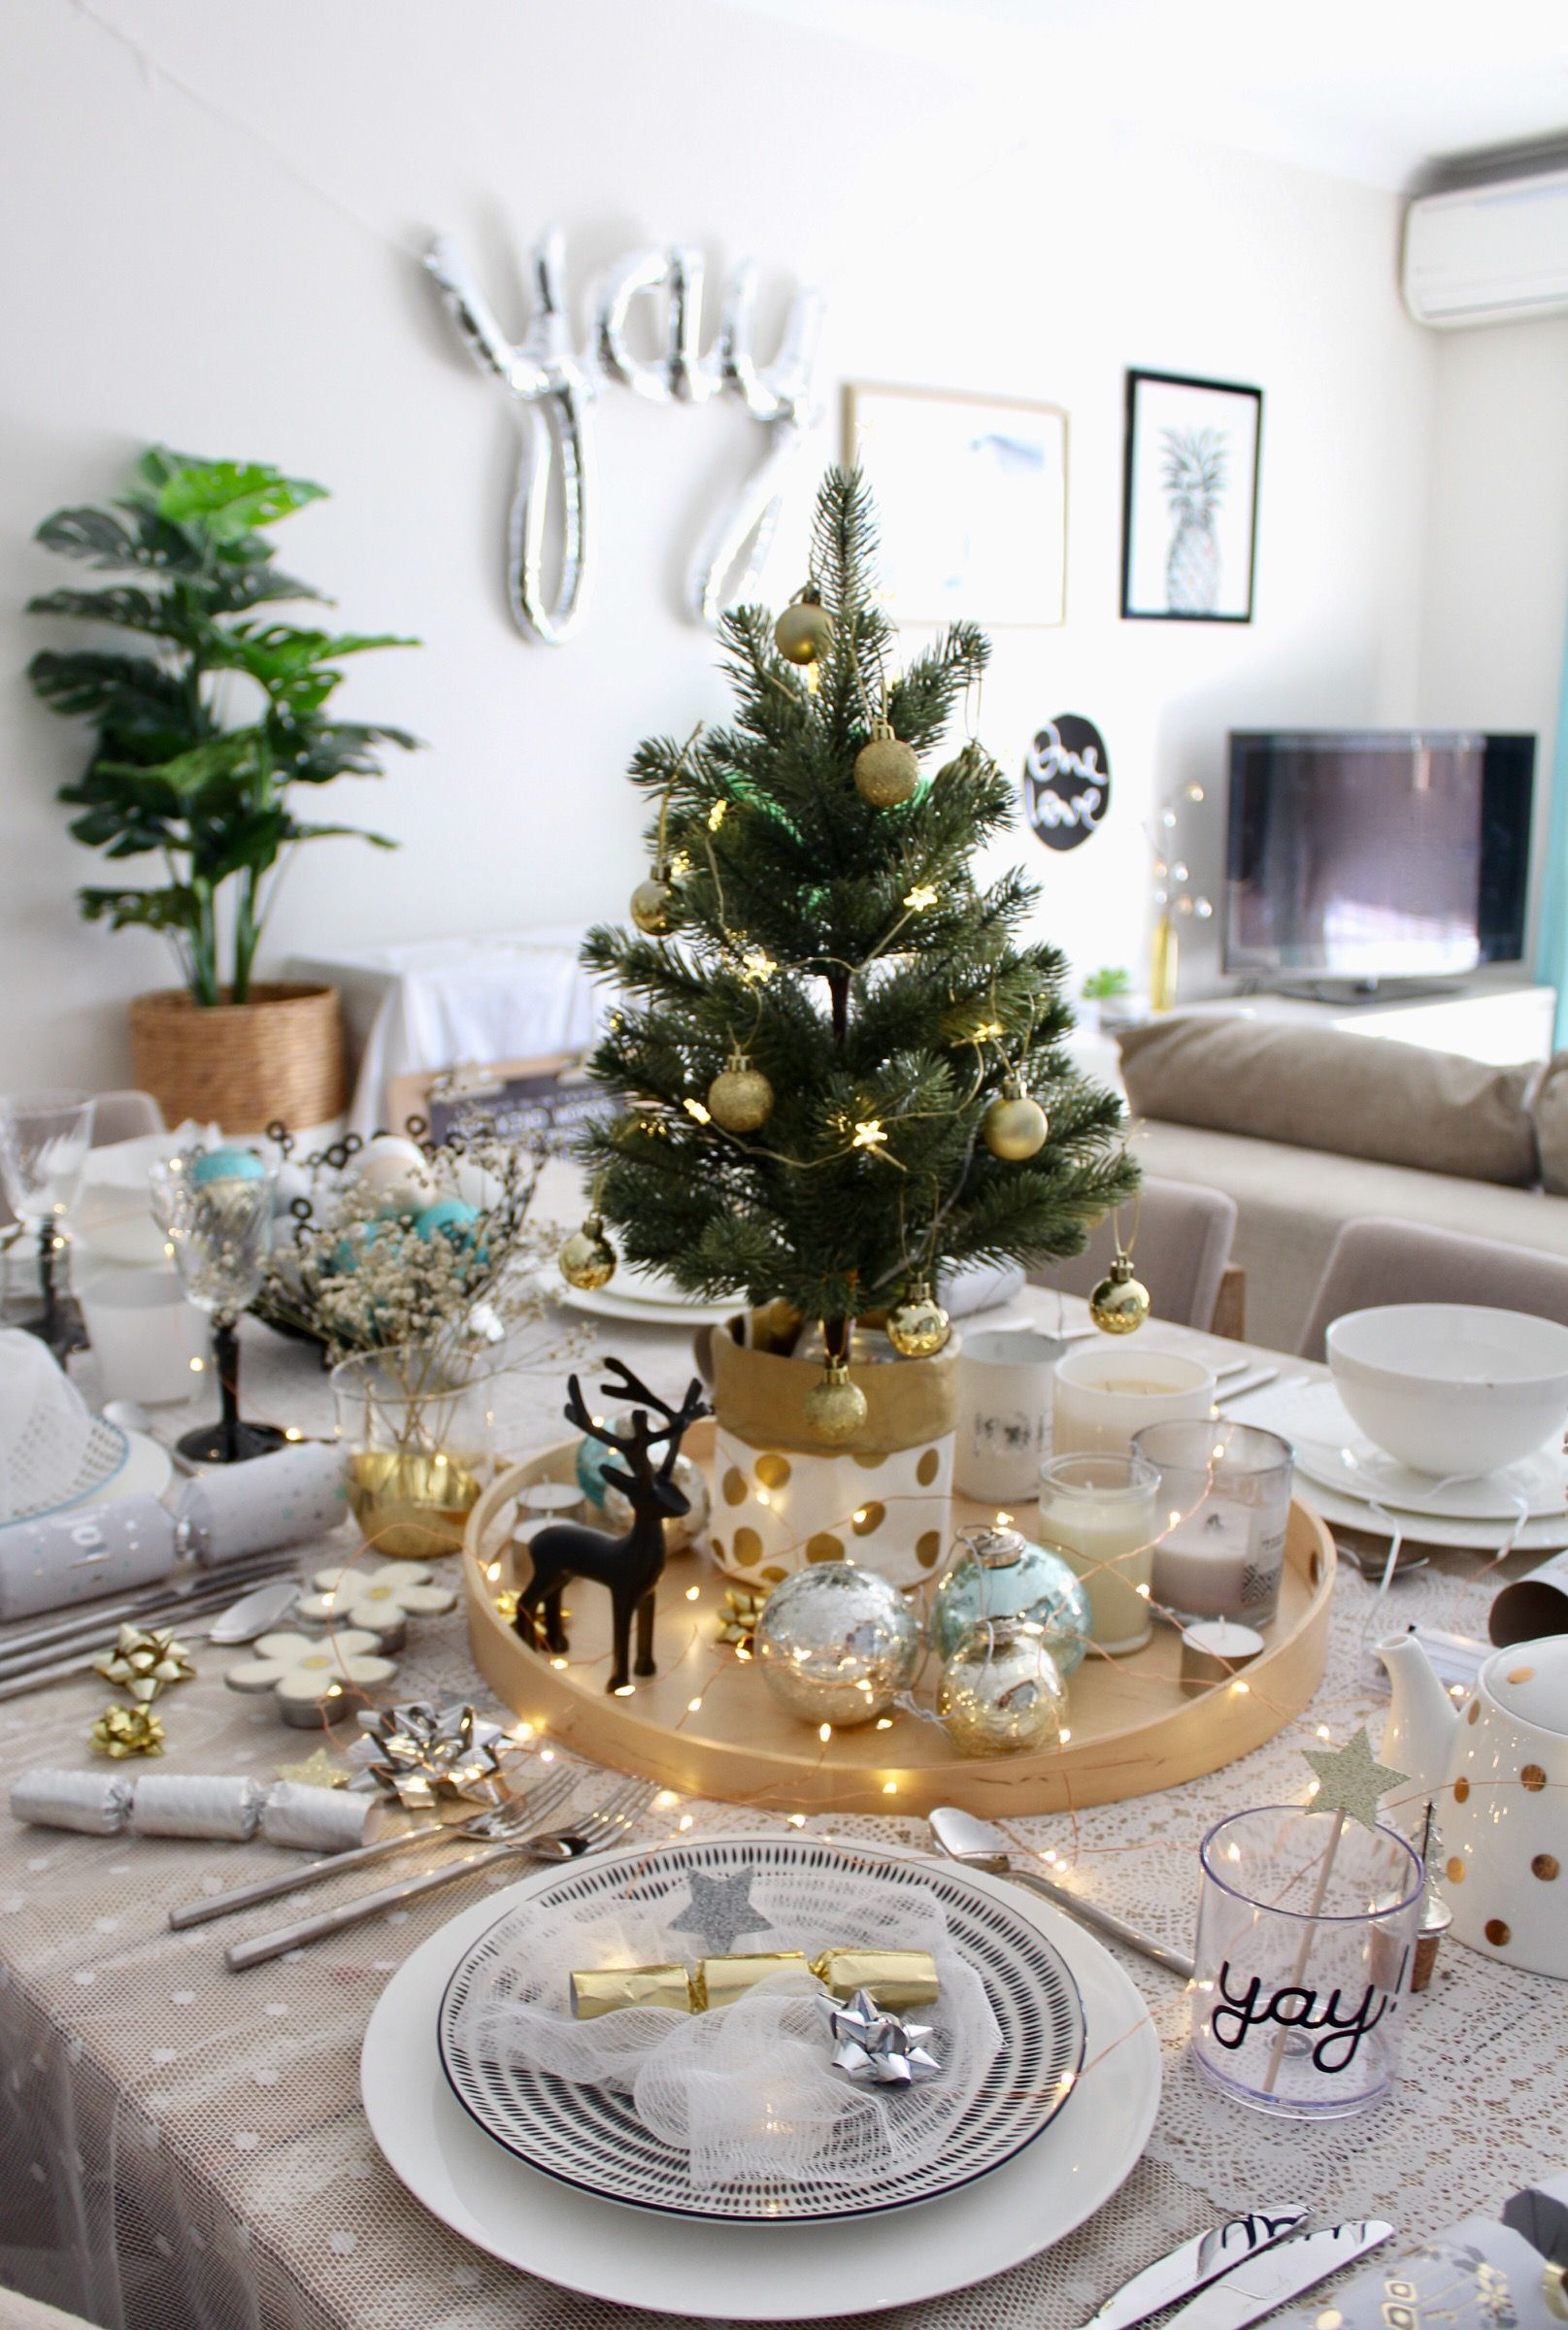 How To Style A Christmas Table With Ease Christmas Table Centerpieces Christmas Table Christmas Table Decorations